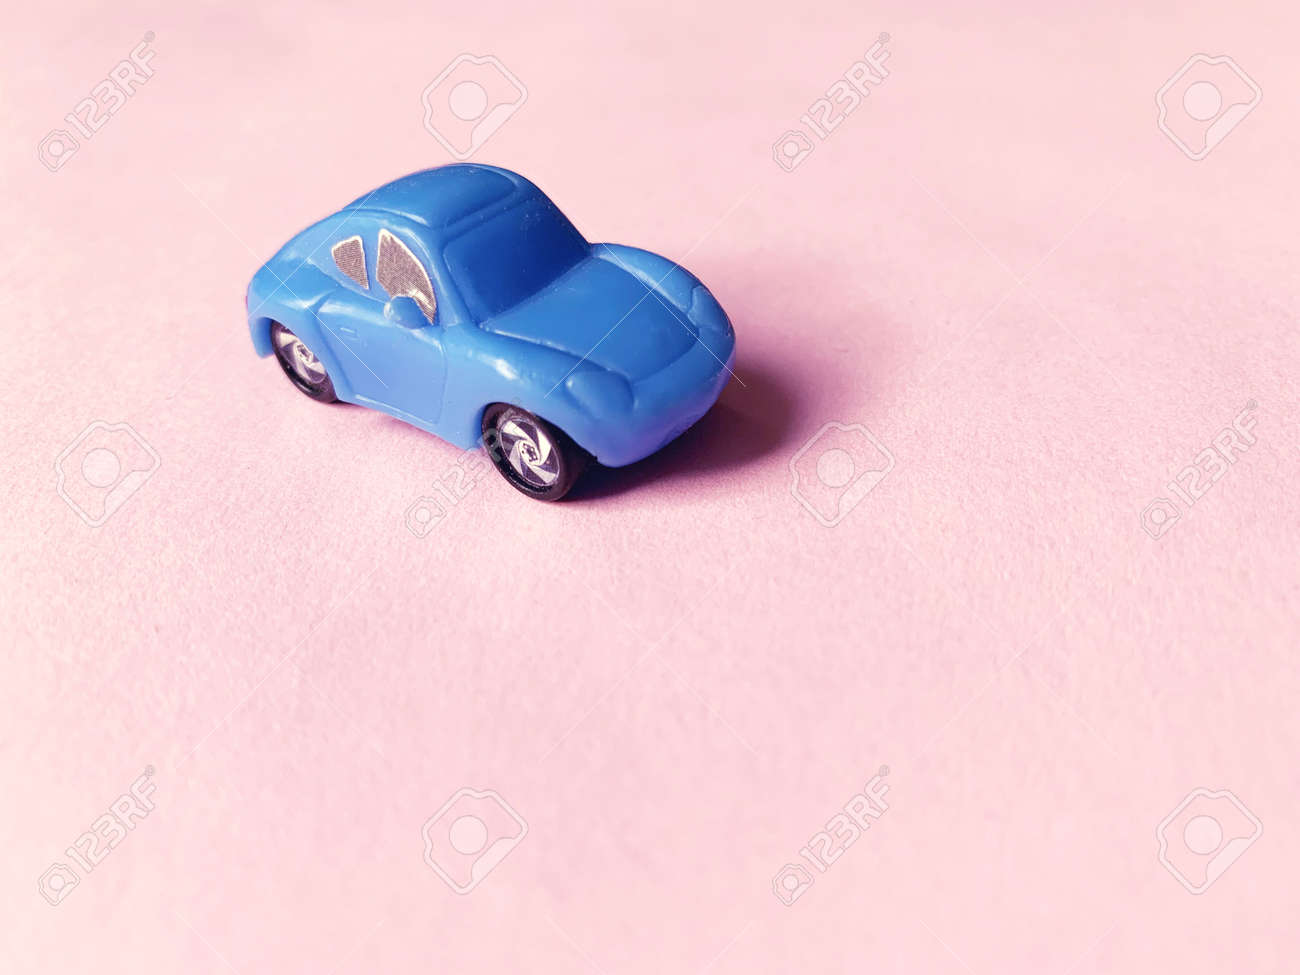 blue toy car on pink paper background - 169603107